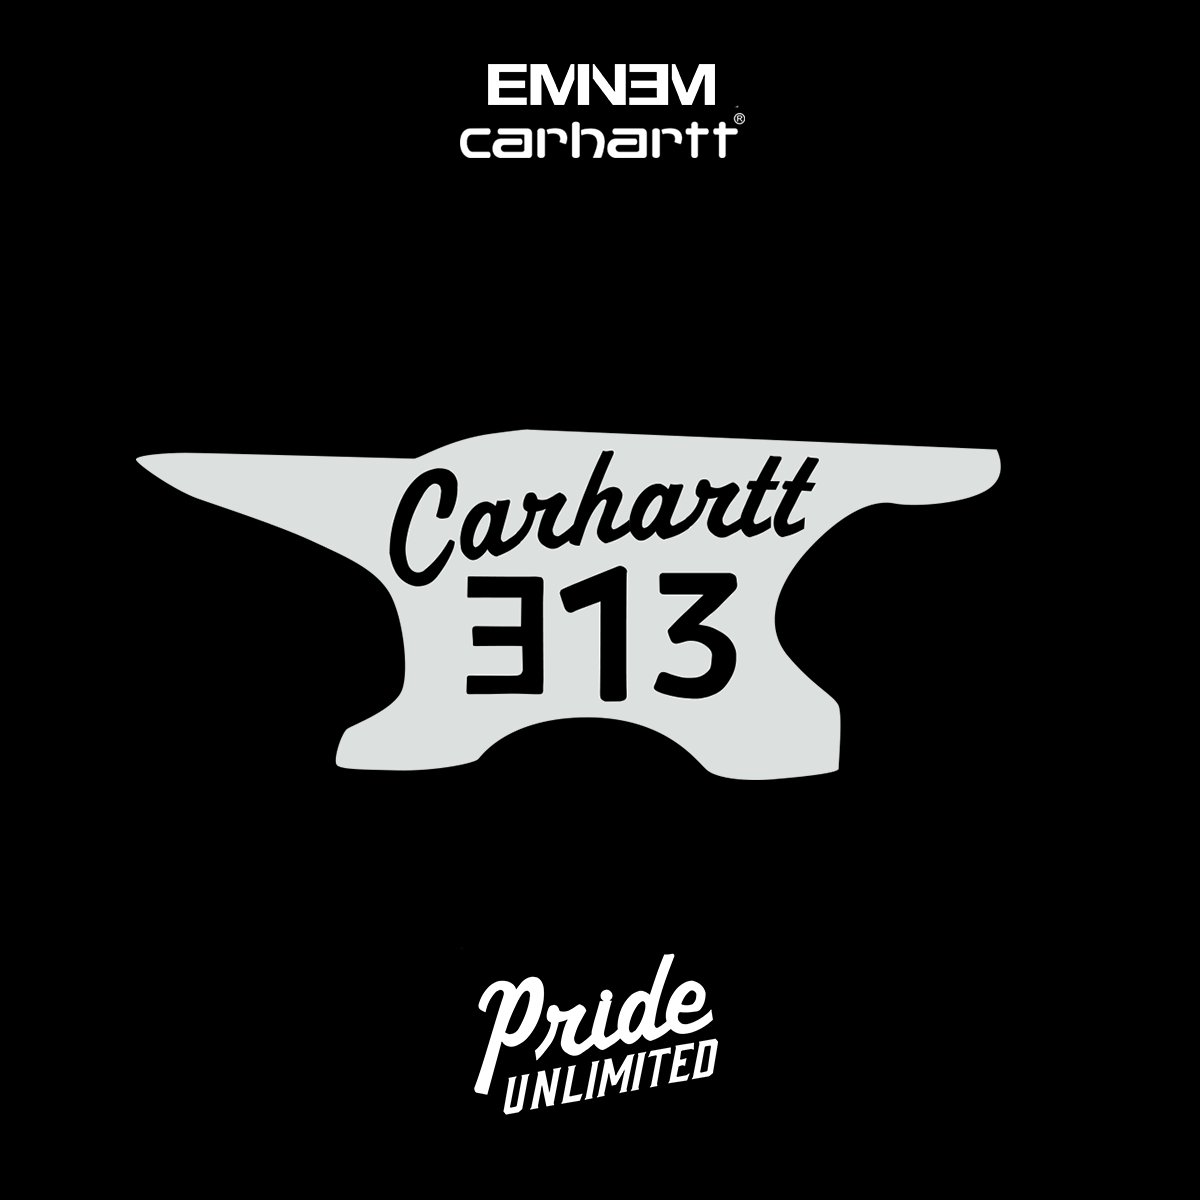 eminem carhartt, eminem black friday